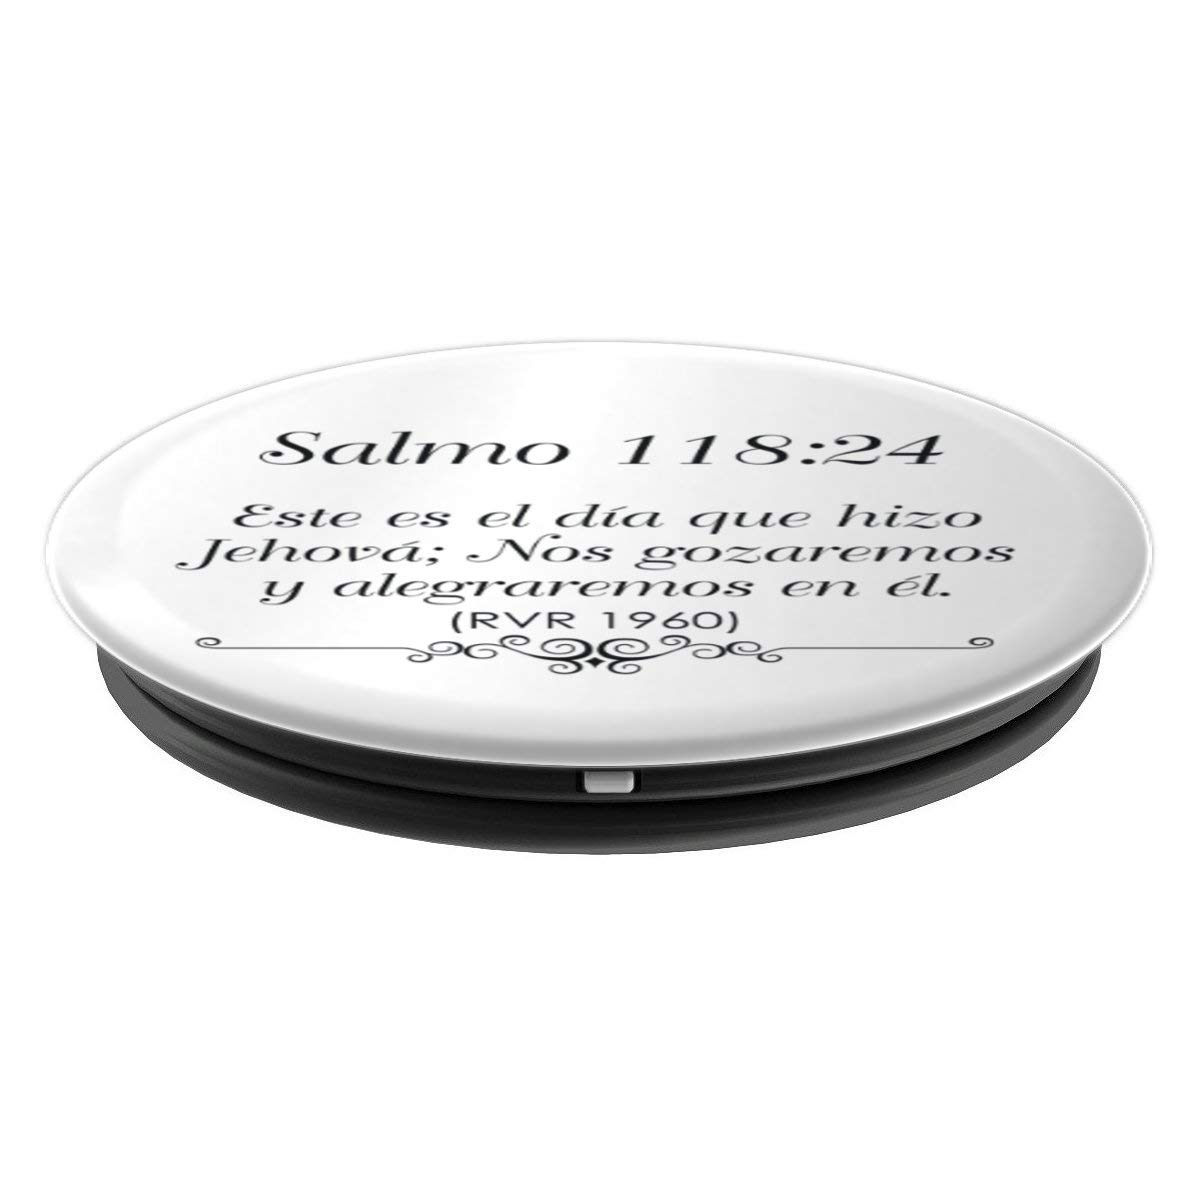 Amazon.com: Popsockets Para Celular Color Blanco Con Salmo 118:24 - PopSockets Grip and Stand for Phones and Tablets: Cell Phones & Accessories